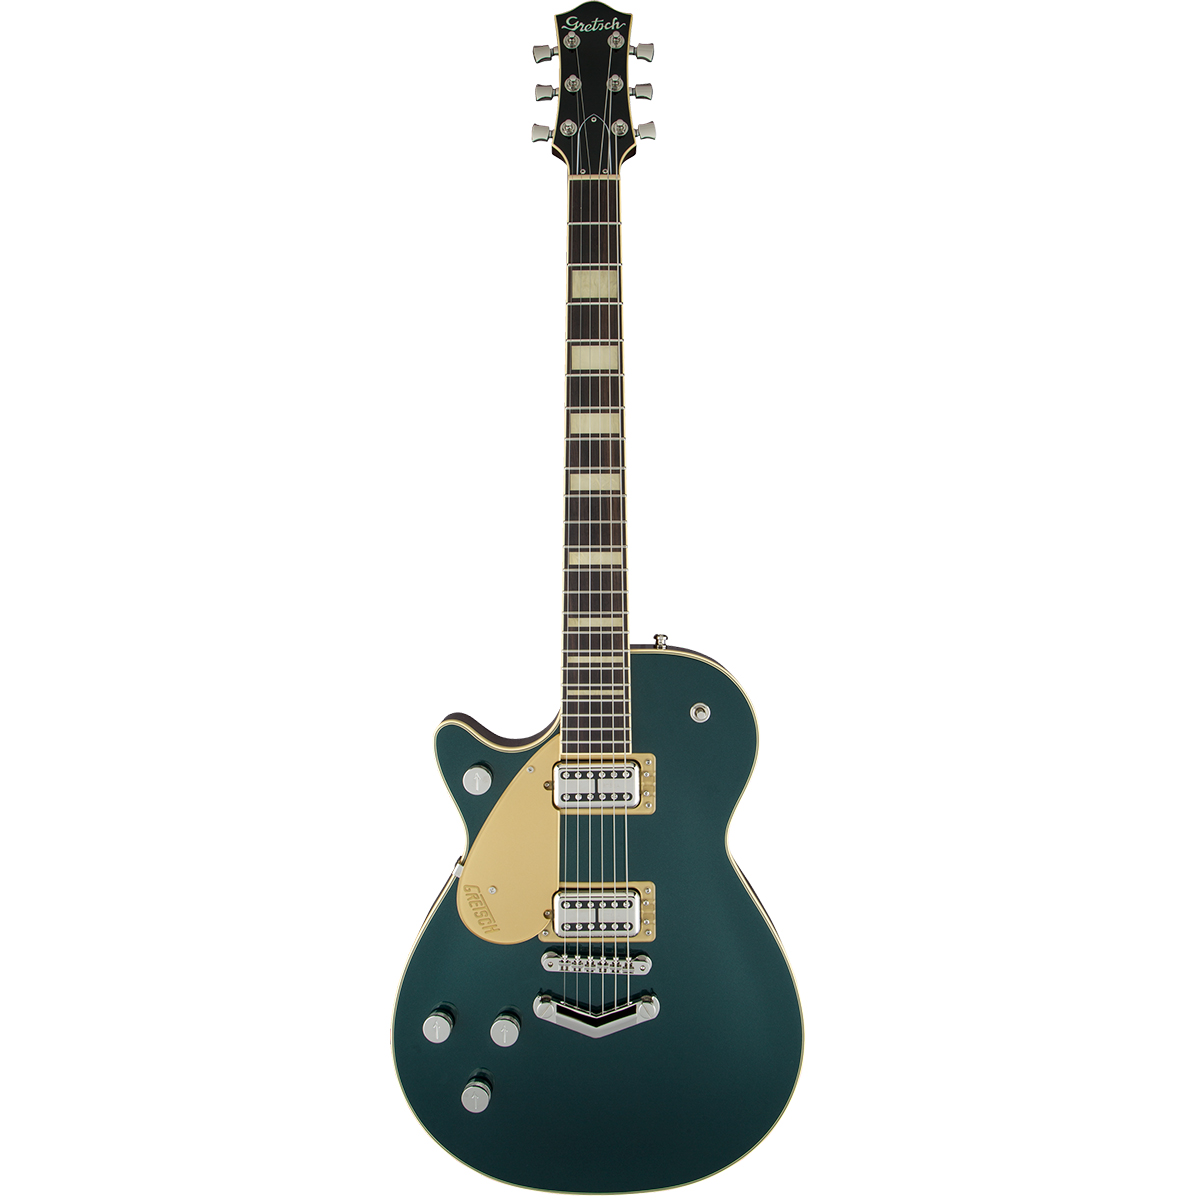 Gretsch G6228 Players Edition Jet BT LH CGR  - Guitarra zurda